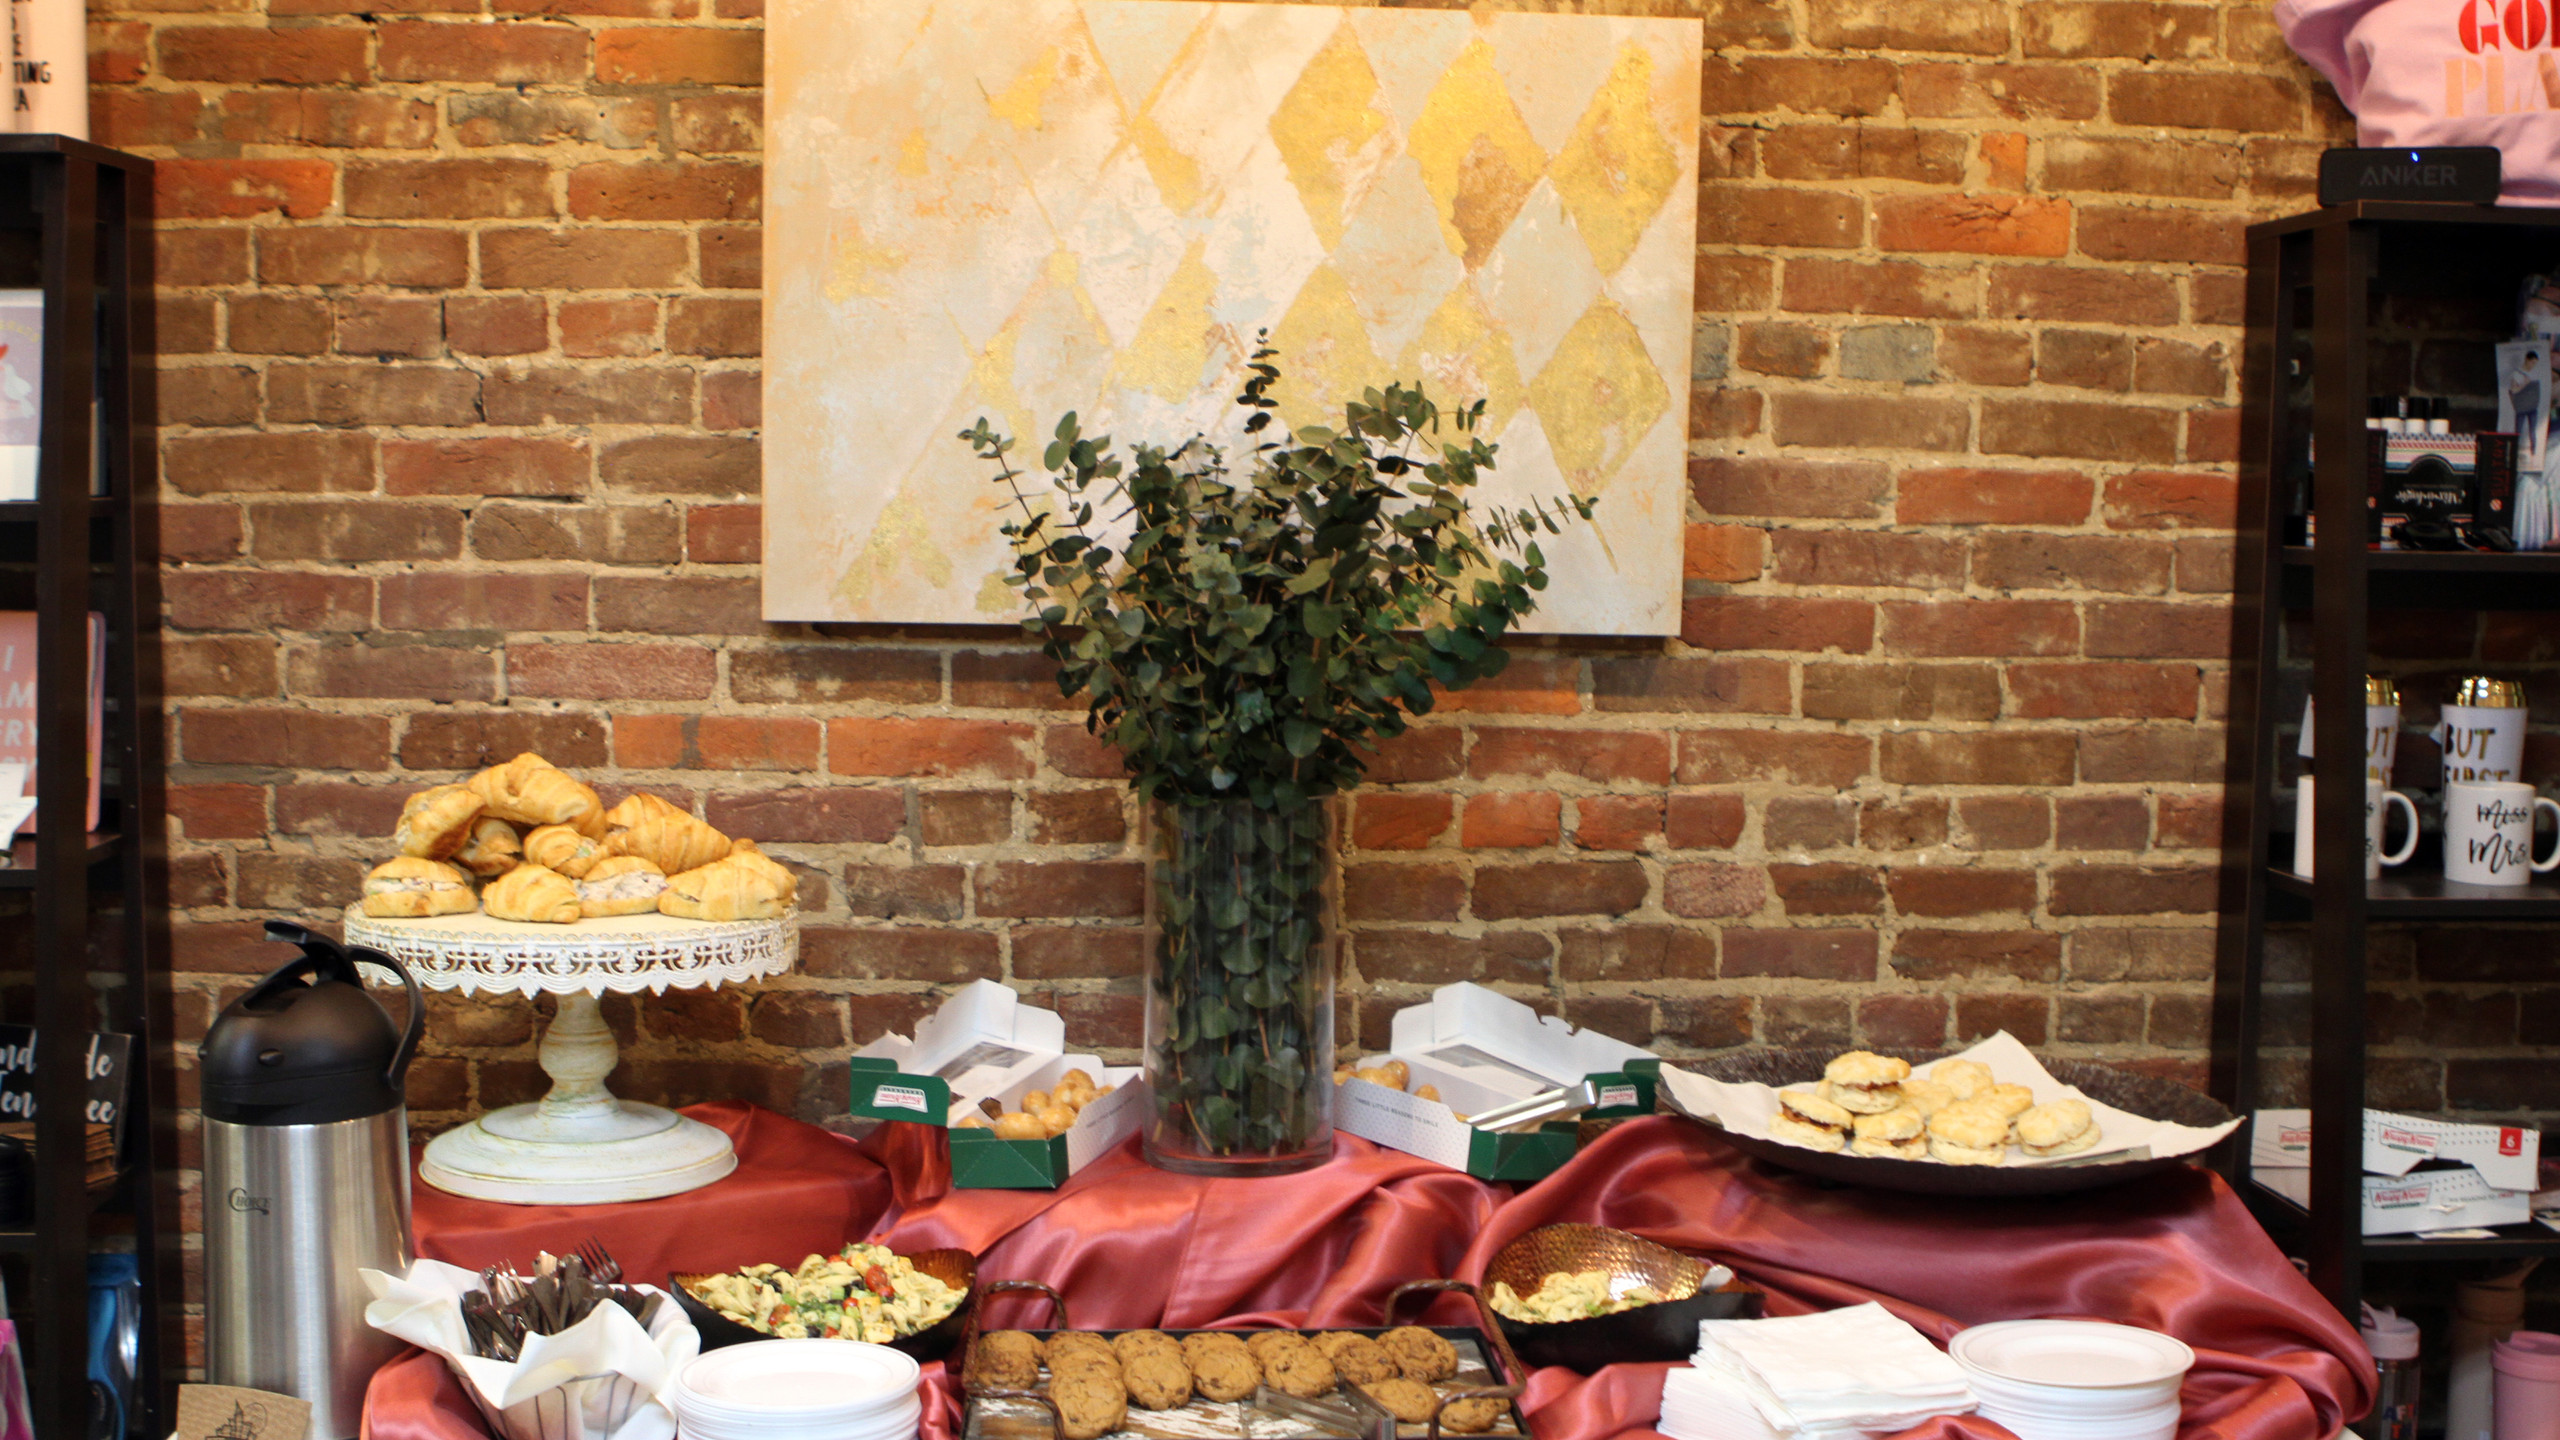 Nicoletta's Catering handled the culinar